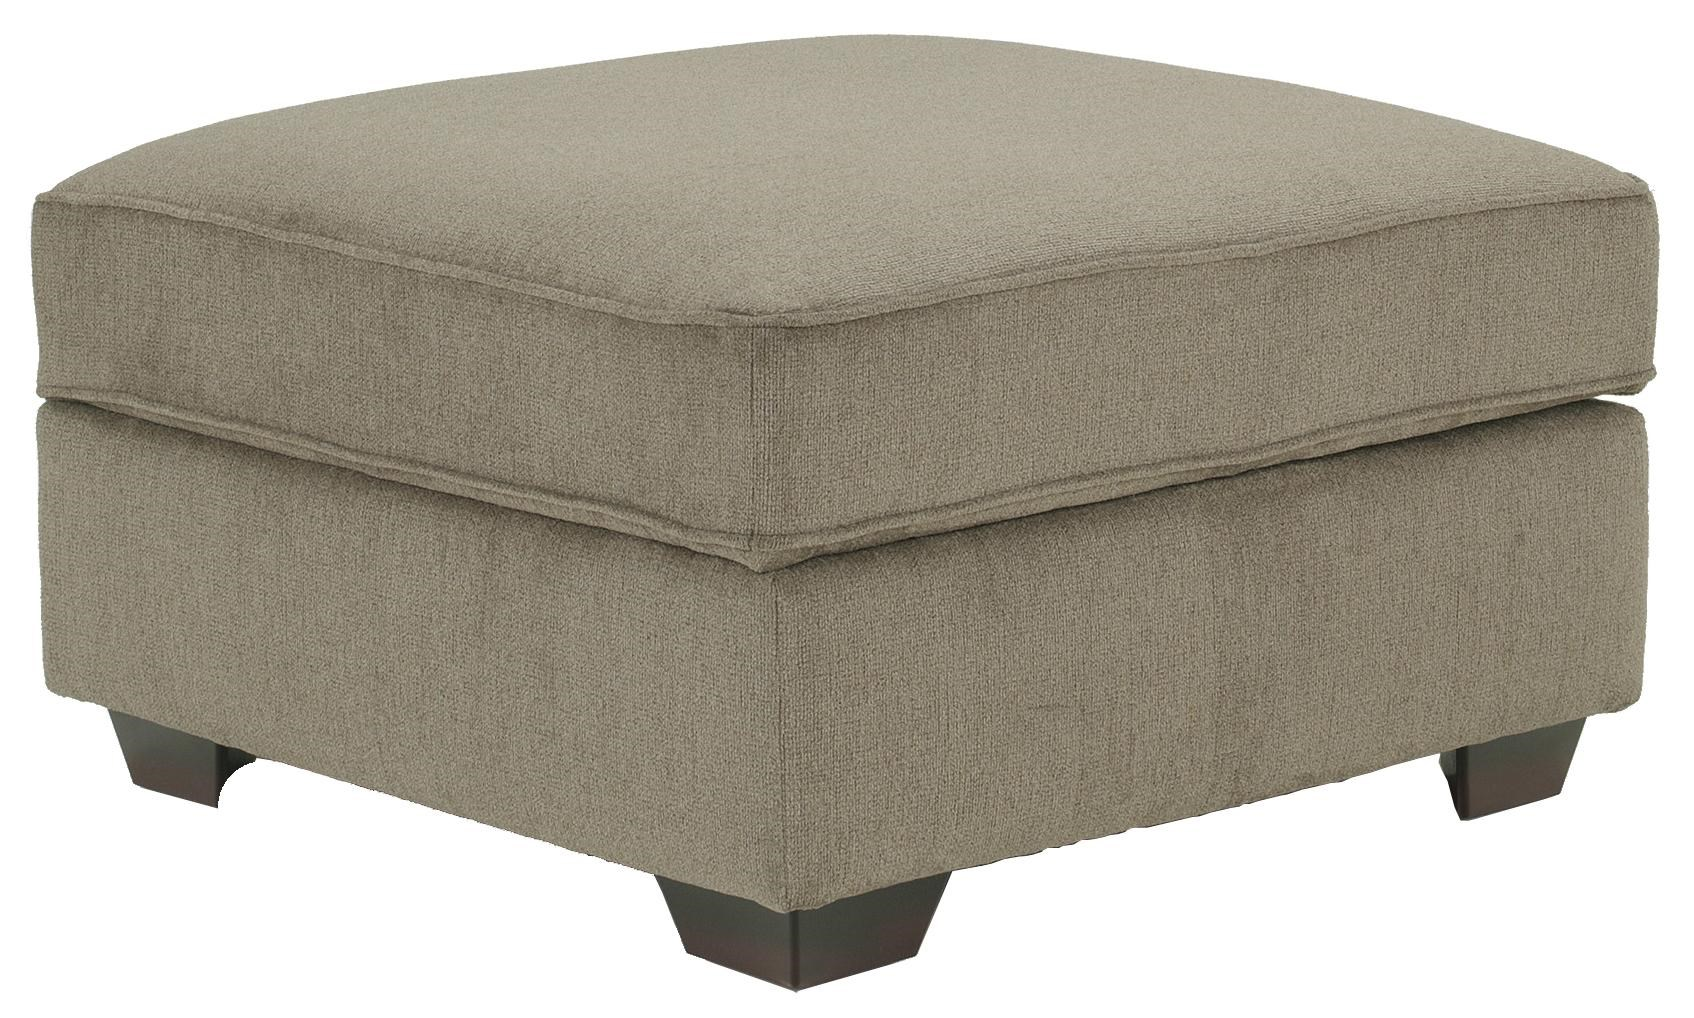 Ashley Furniture Patola Park - Patina Square Cocktail Ottoman With Storage  sc 1 st  Michaelu0027s Furniture Warehouse : ashley furniture patola park sectional - Sectionals, Sofas & Couches